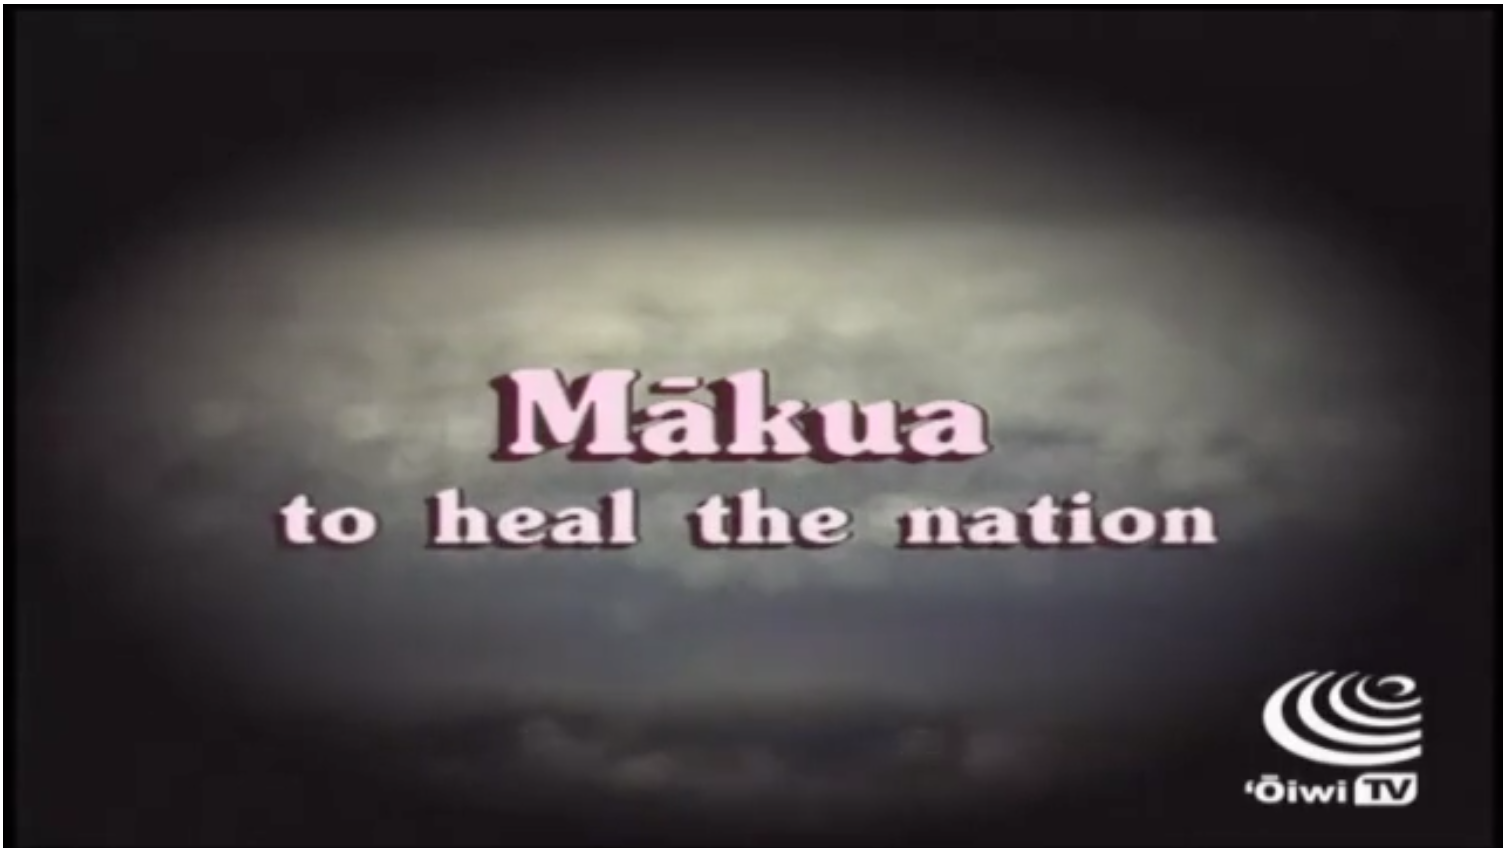 Click on the image above to watch the documentary   Mākua - to heal the nation  .